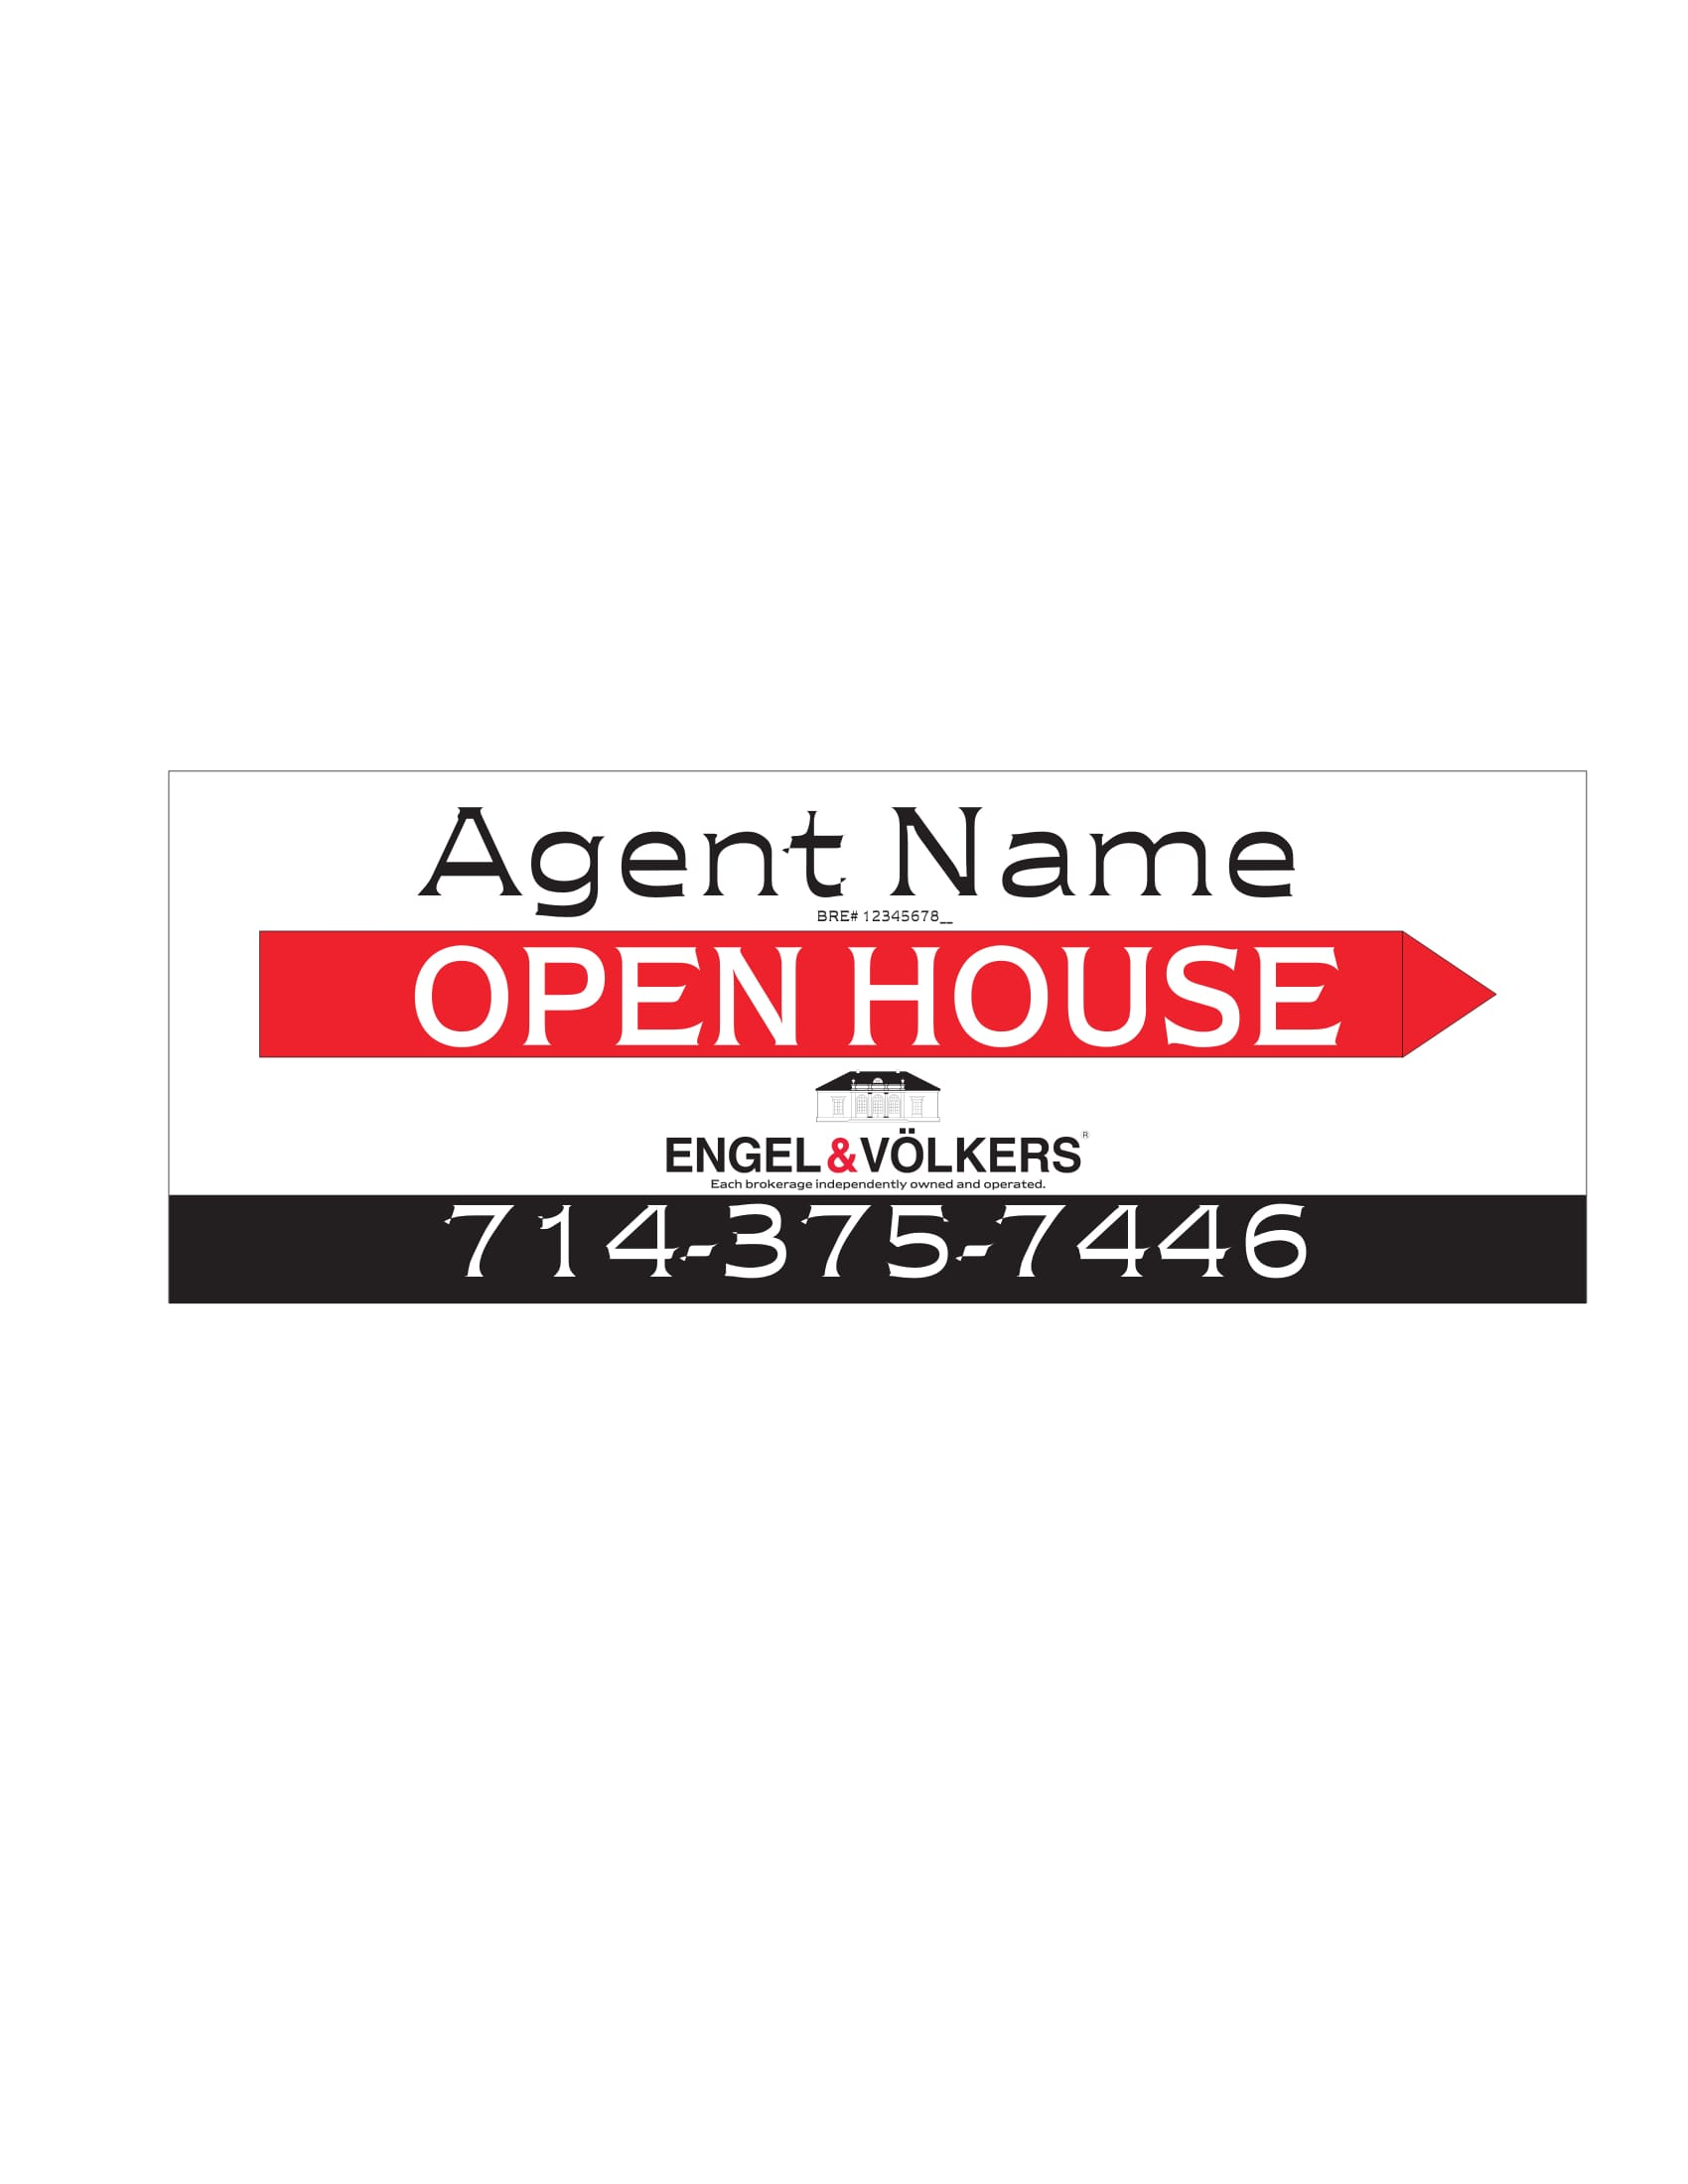 Engel & Volkers 9x24 Open House Signs